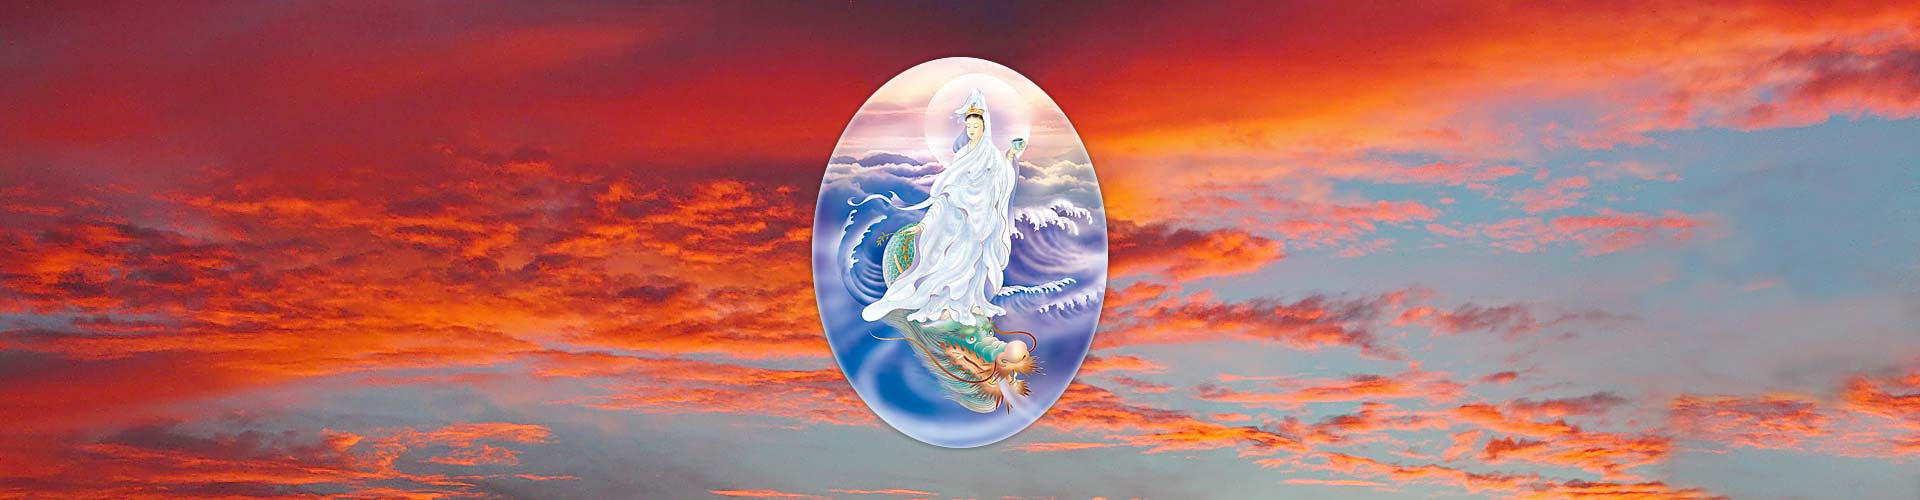 Sunset with Kuan Yin that depicts Dragon's Fire discourses